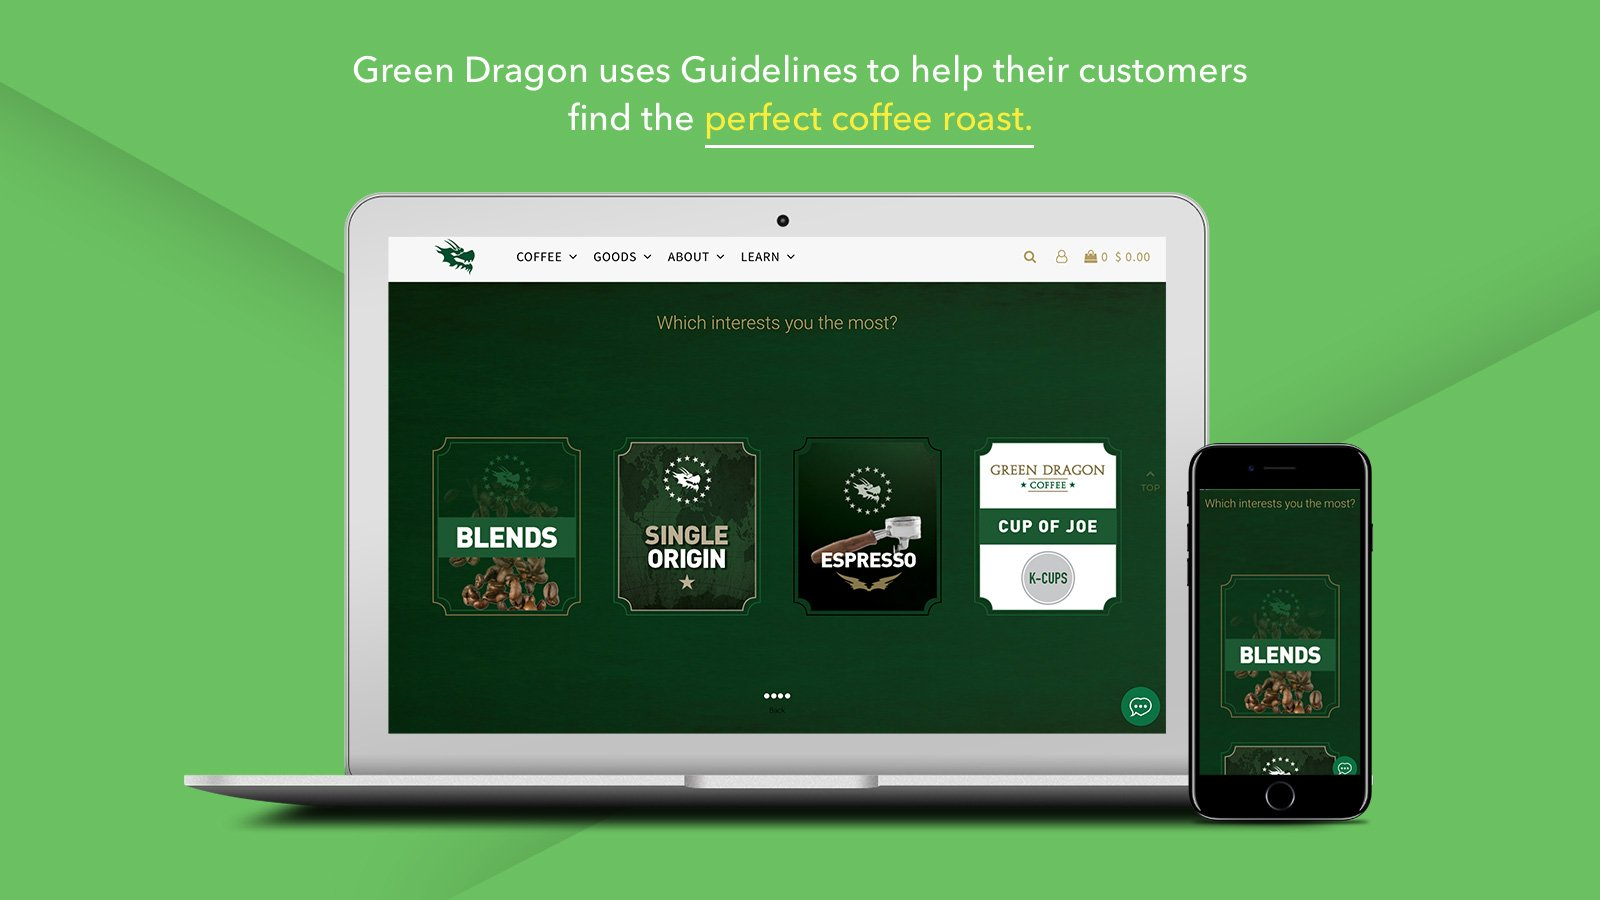 Guidelines coffee roast product finders for Shopify on the Green